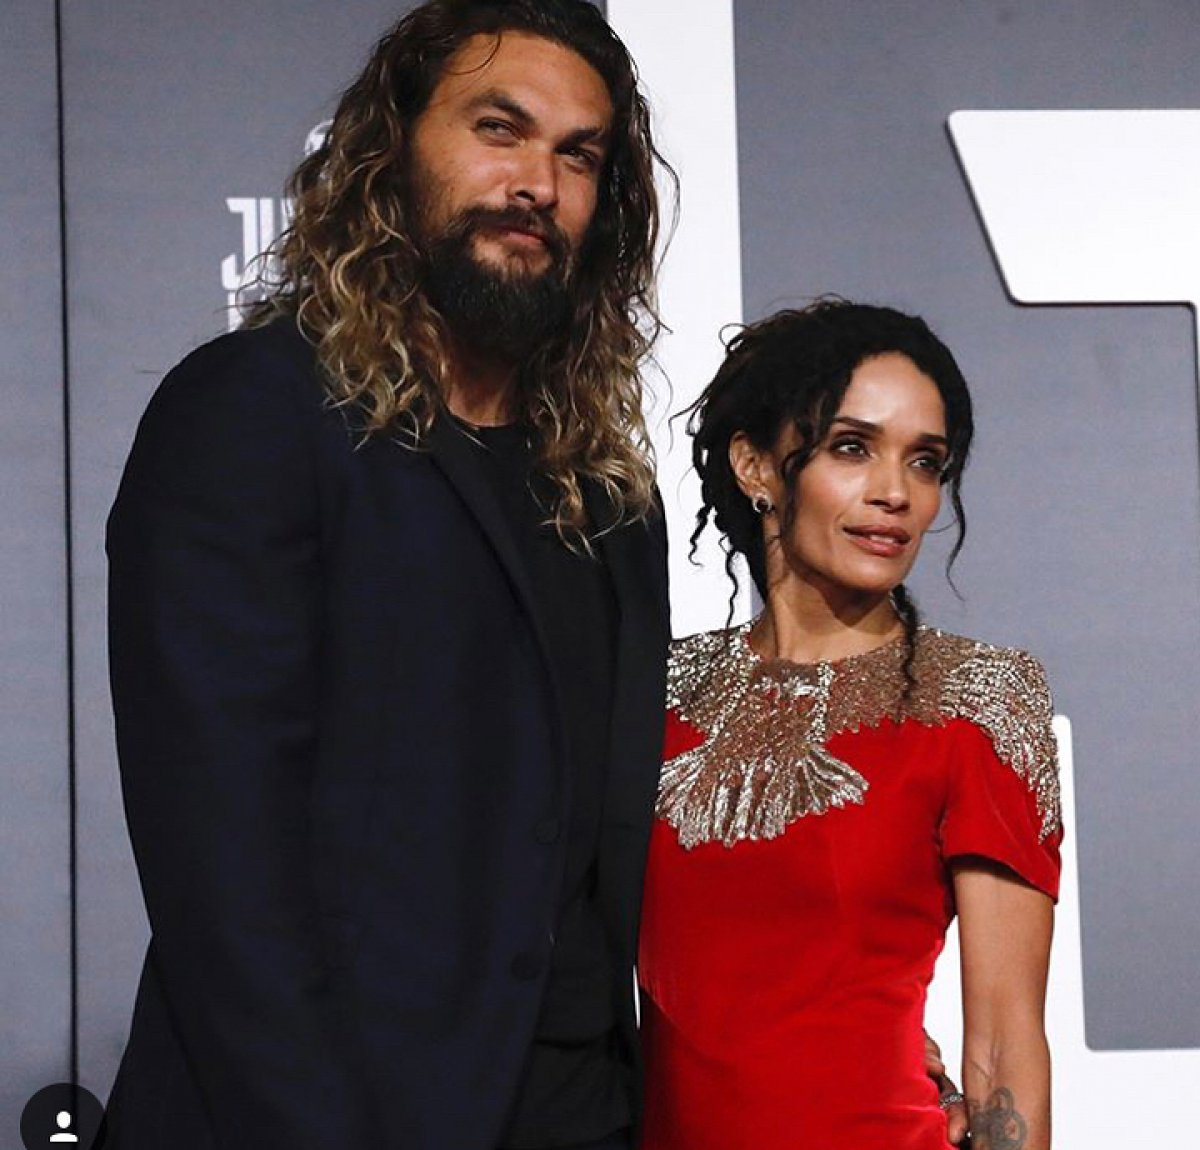 Jason Momoa And Lisa Bonet Attend 'Justice League' Movie